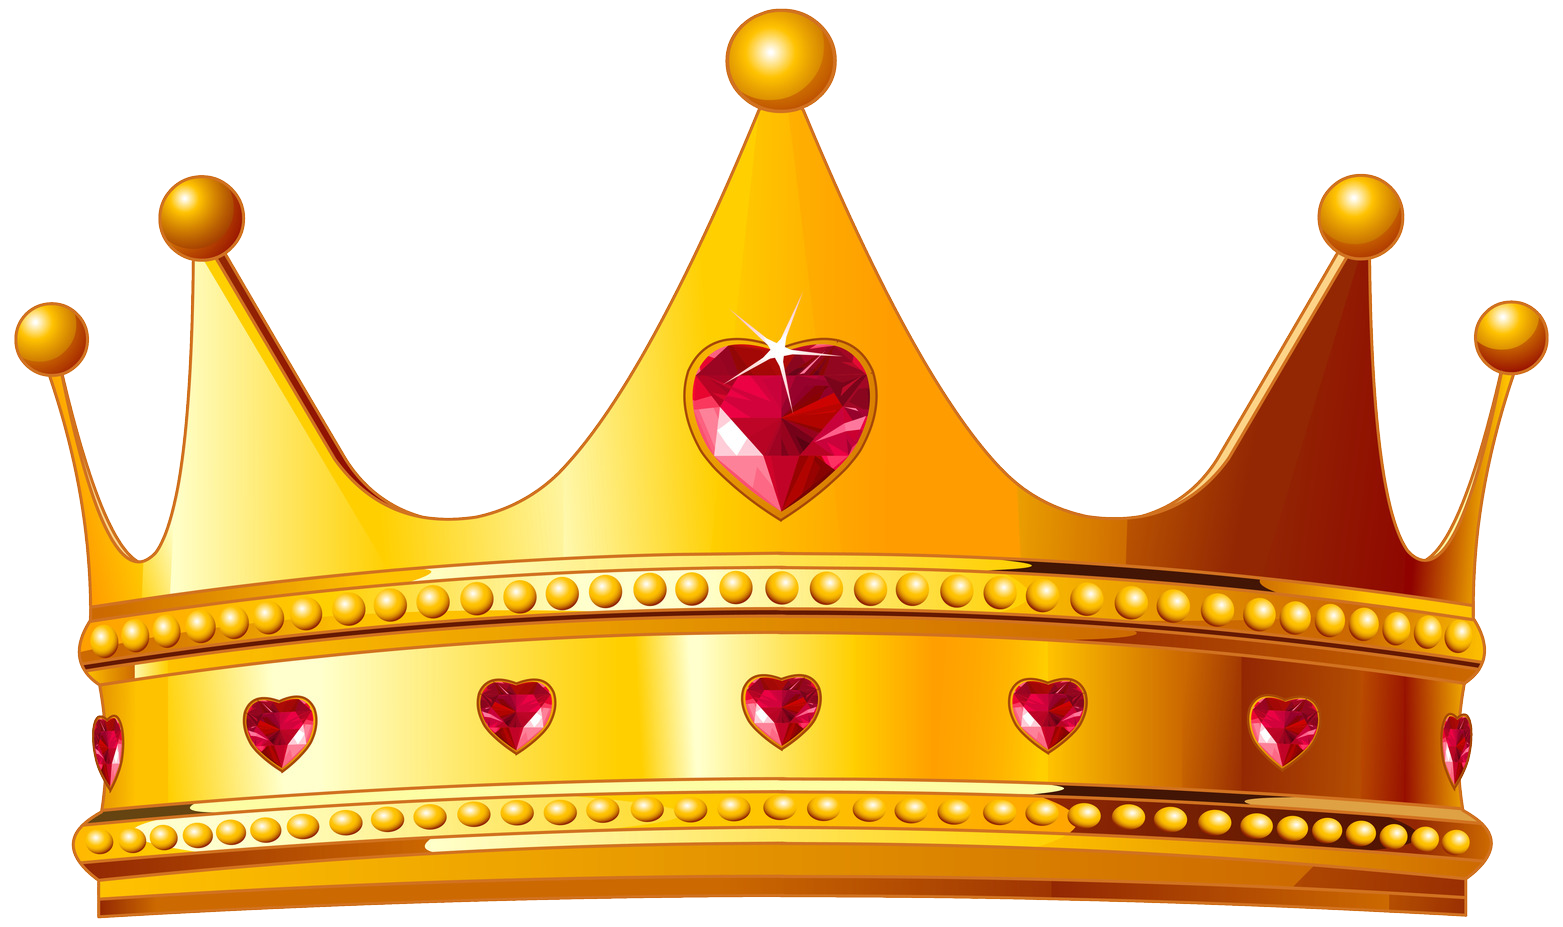 Background image png. Full hd crown transparent